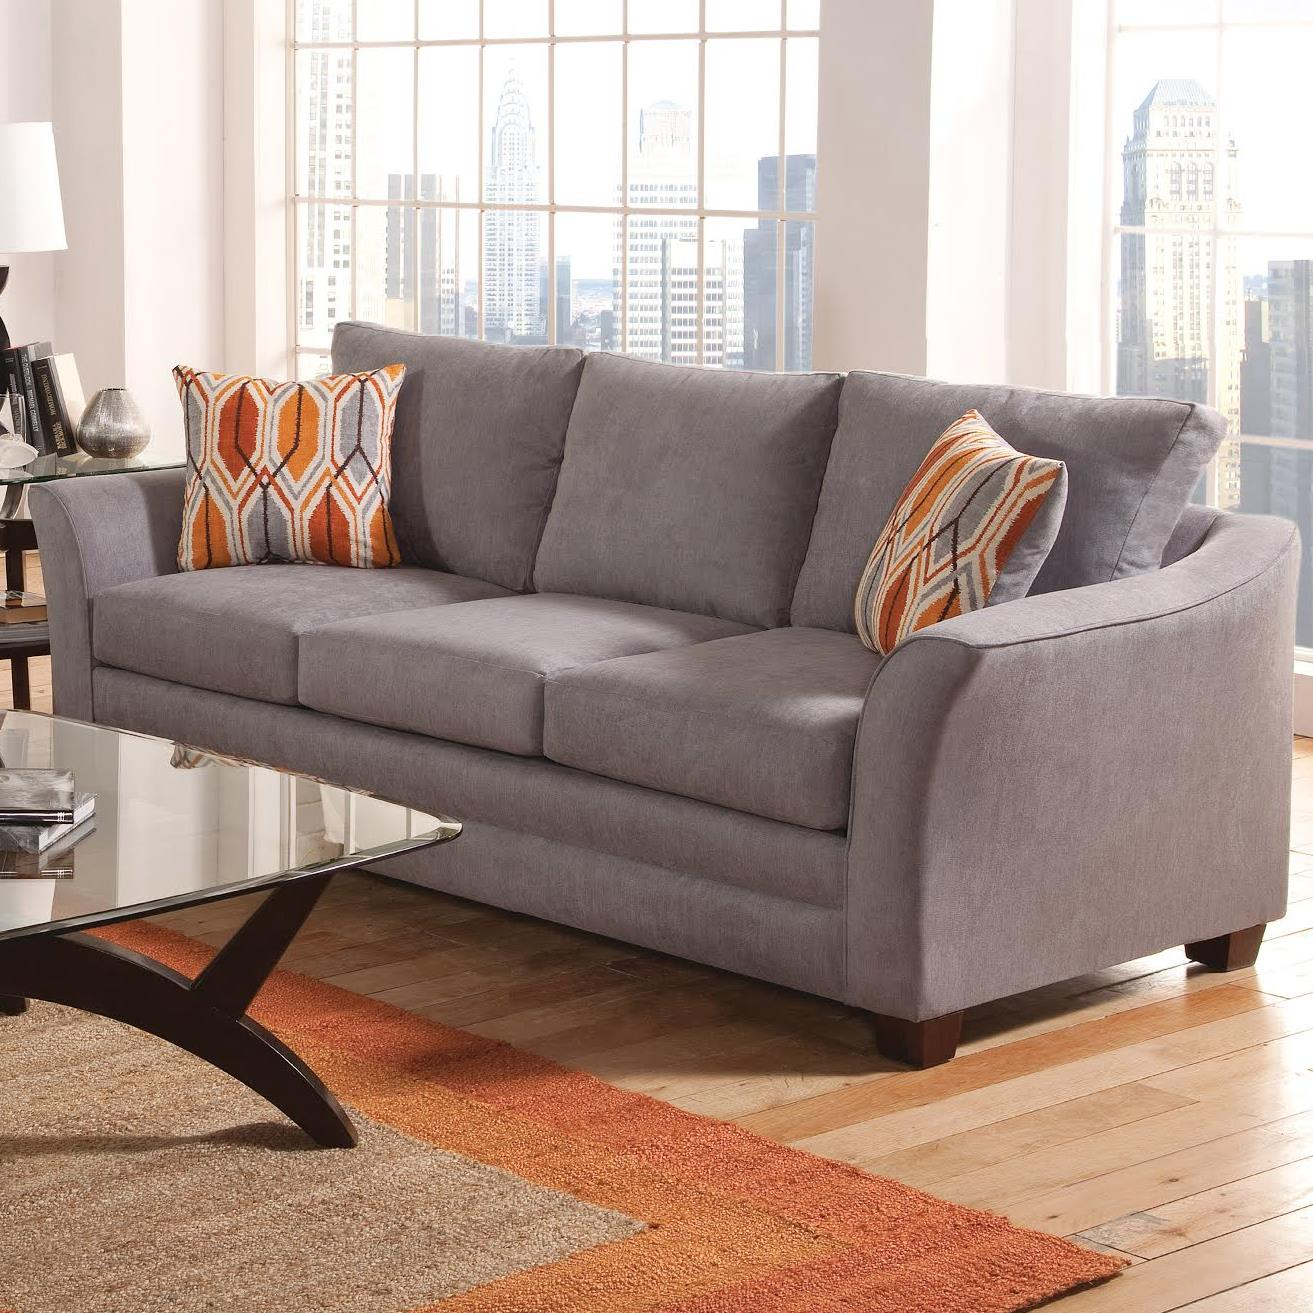 Charmant Belfort Essentials Hatfield Sofa   Item Number: 940 30 LightGray